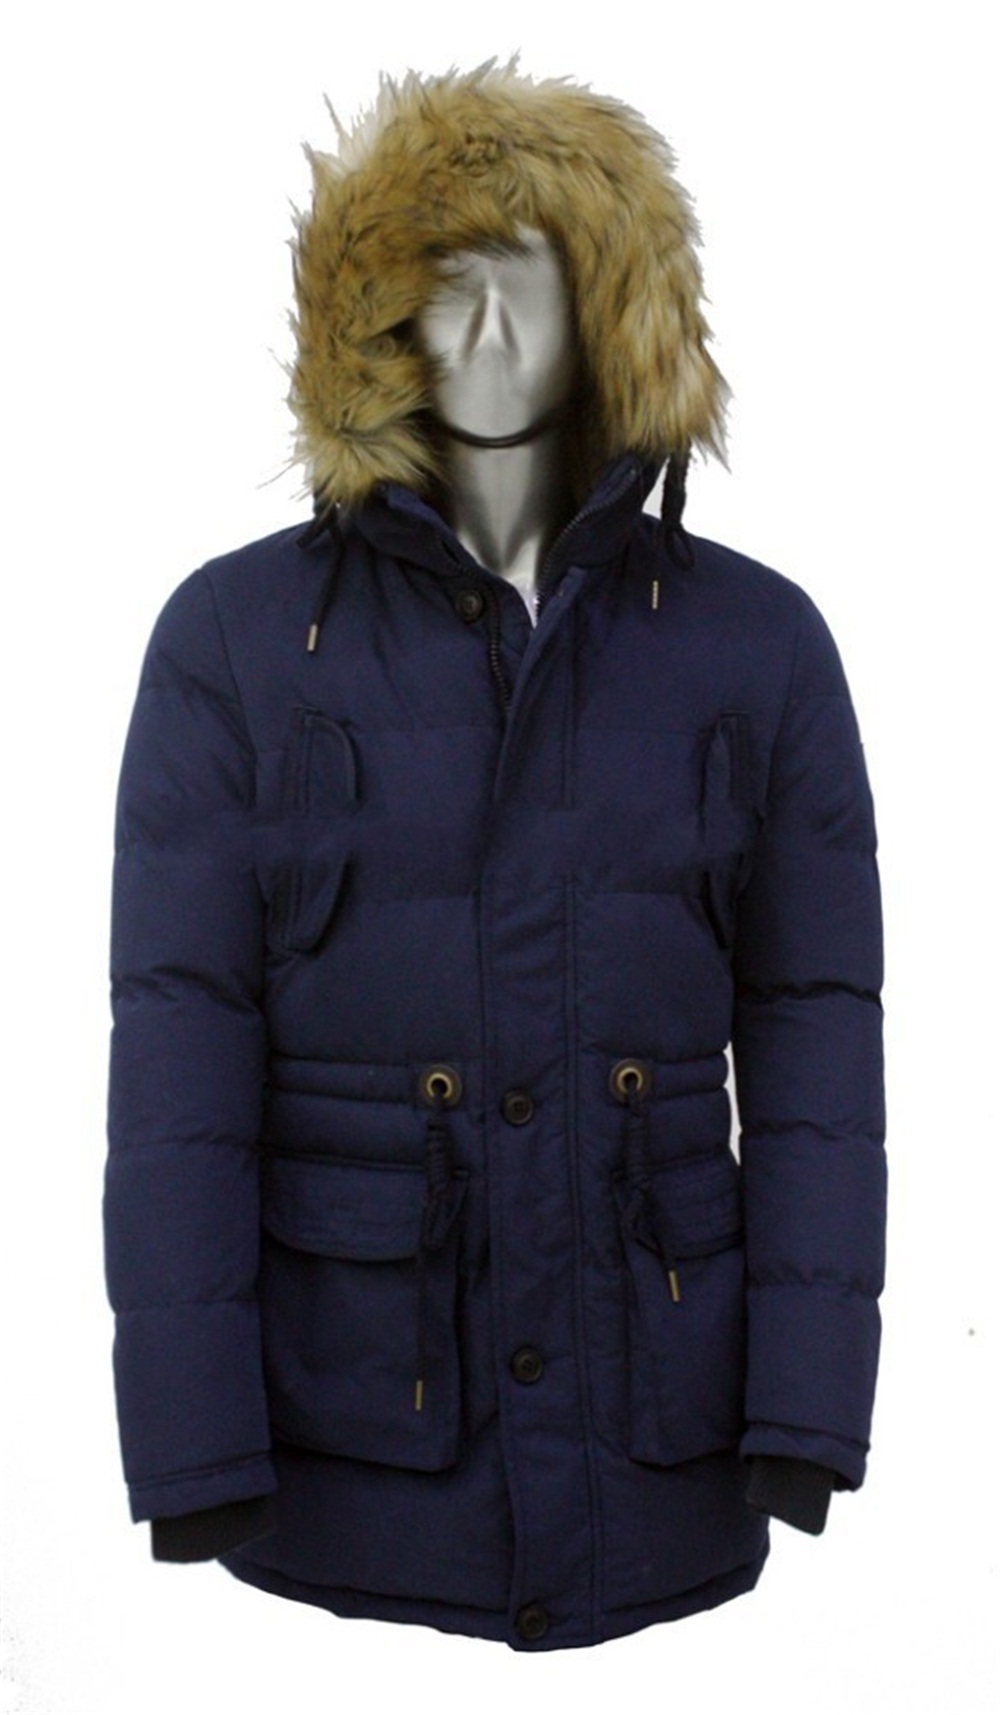 Men jacket,fashion jacket,latest winter jacket for men 8199